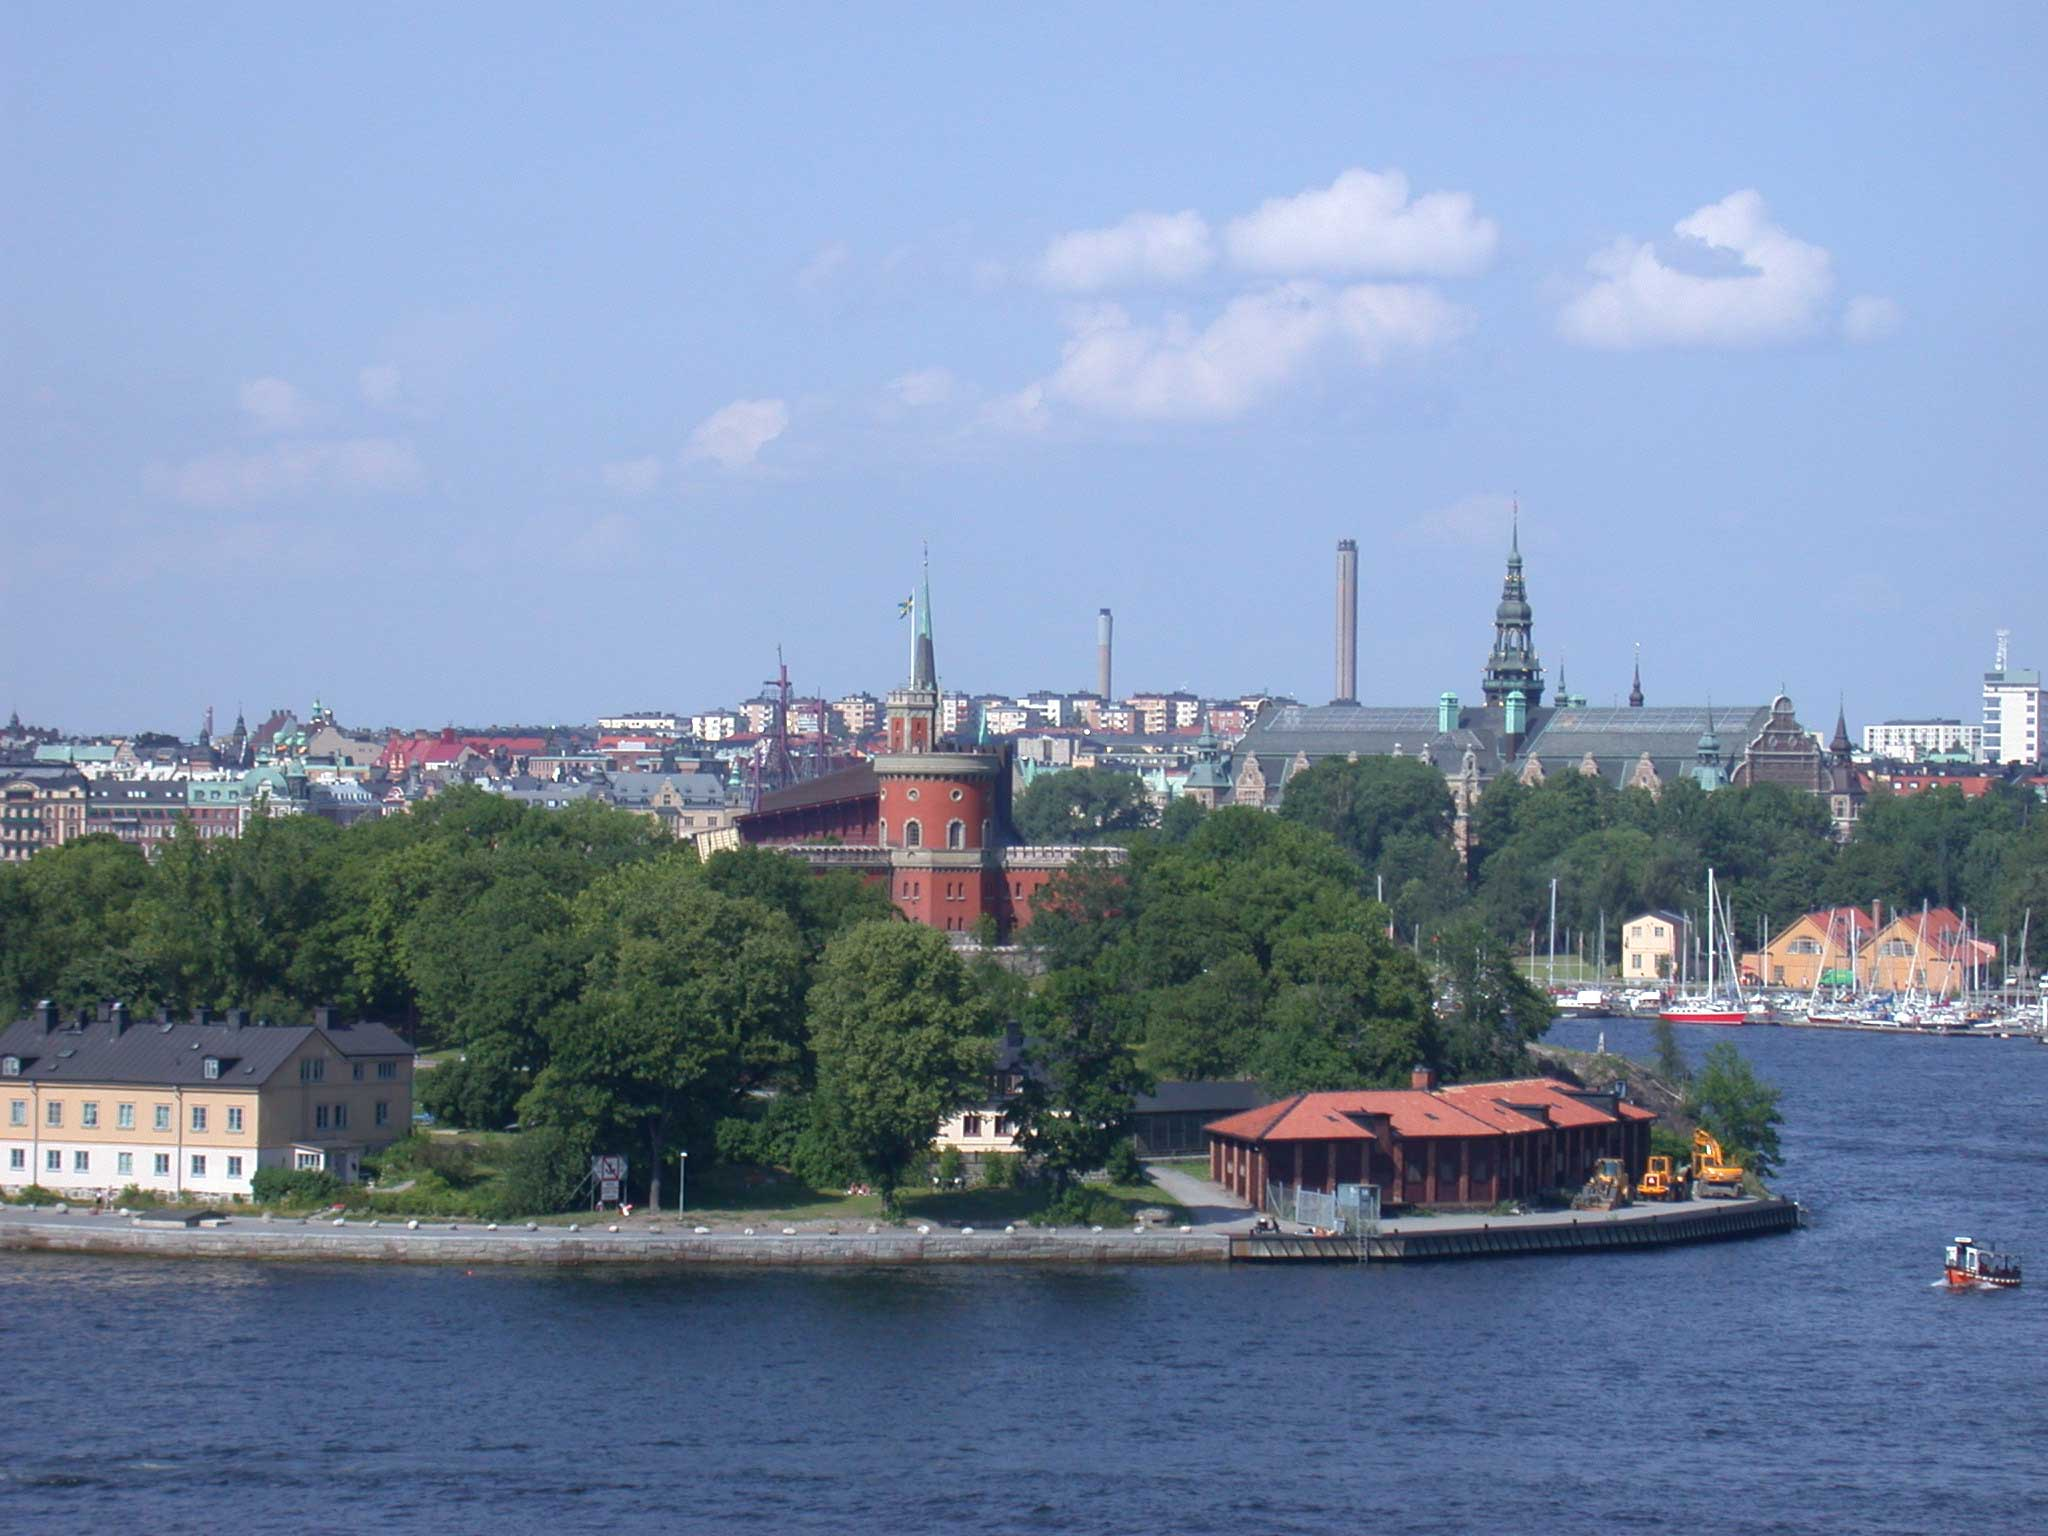 Cruise Baltic: Princess Cruises partnered with Cruise Baltic for Regal Princess Scandinavia and Russia cruises. Pictured is Stockholm, a featured port on this cruise itinerary.